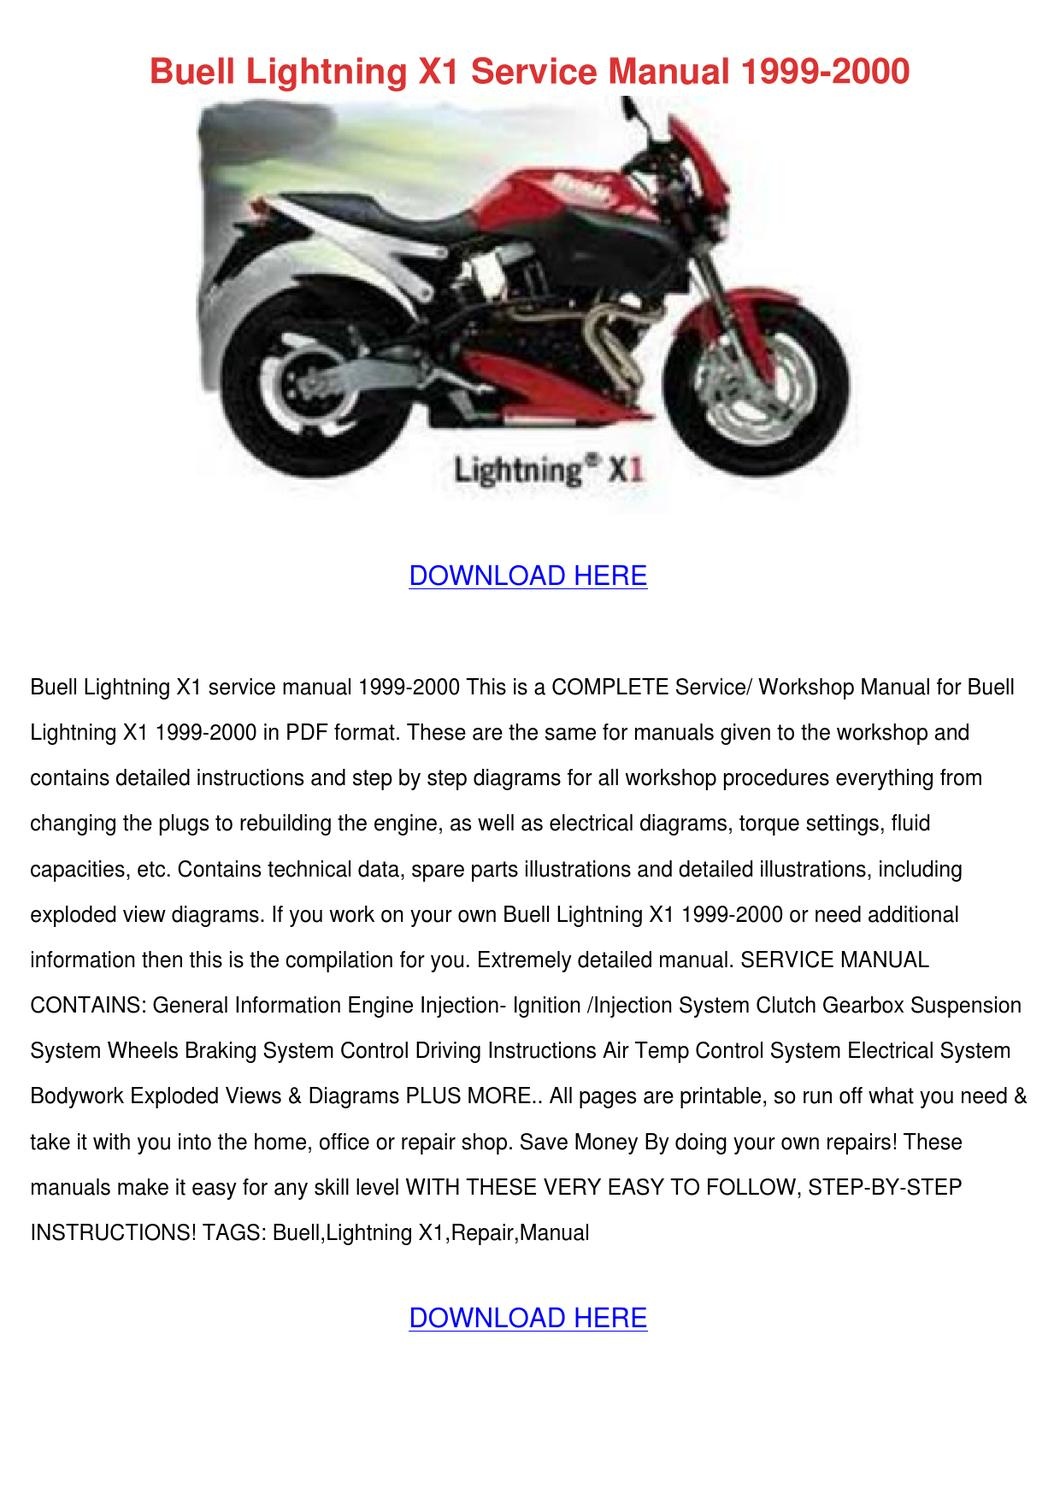 Buell Lightning X1 Service Manual 1999 2000 By Marcelomast Issuu